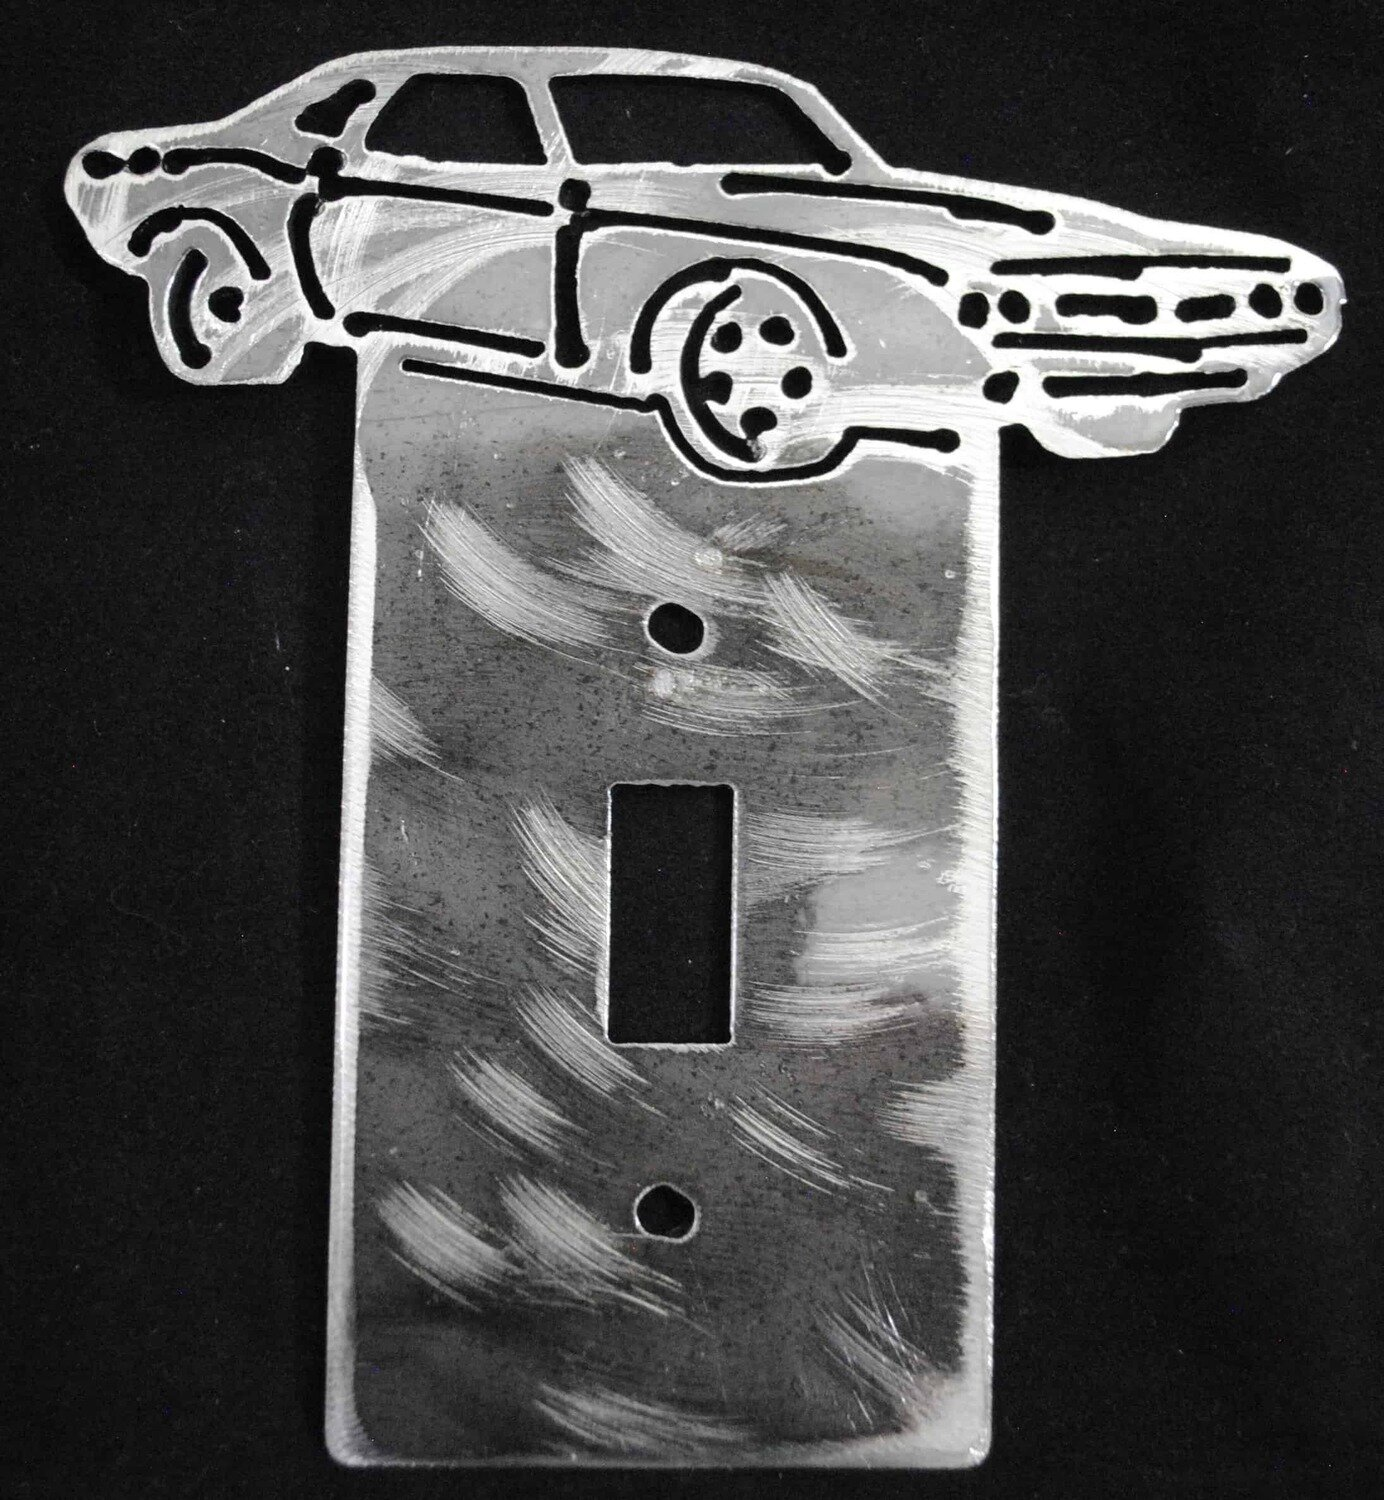 1970 Dodge Challenger Metal Light Switch Cover Plate